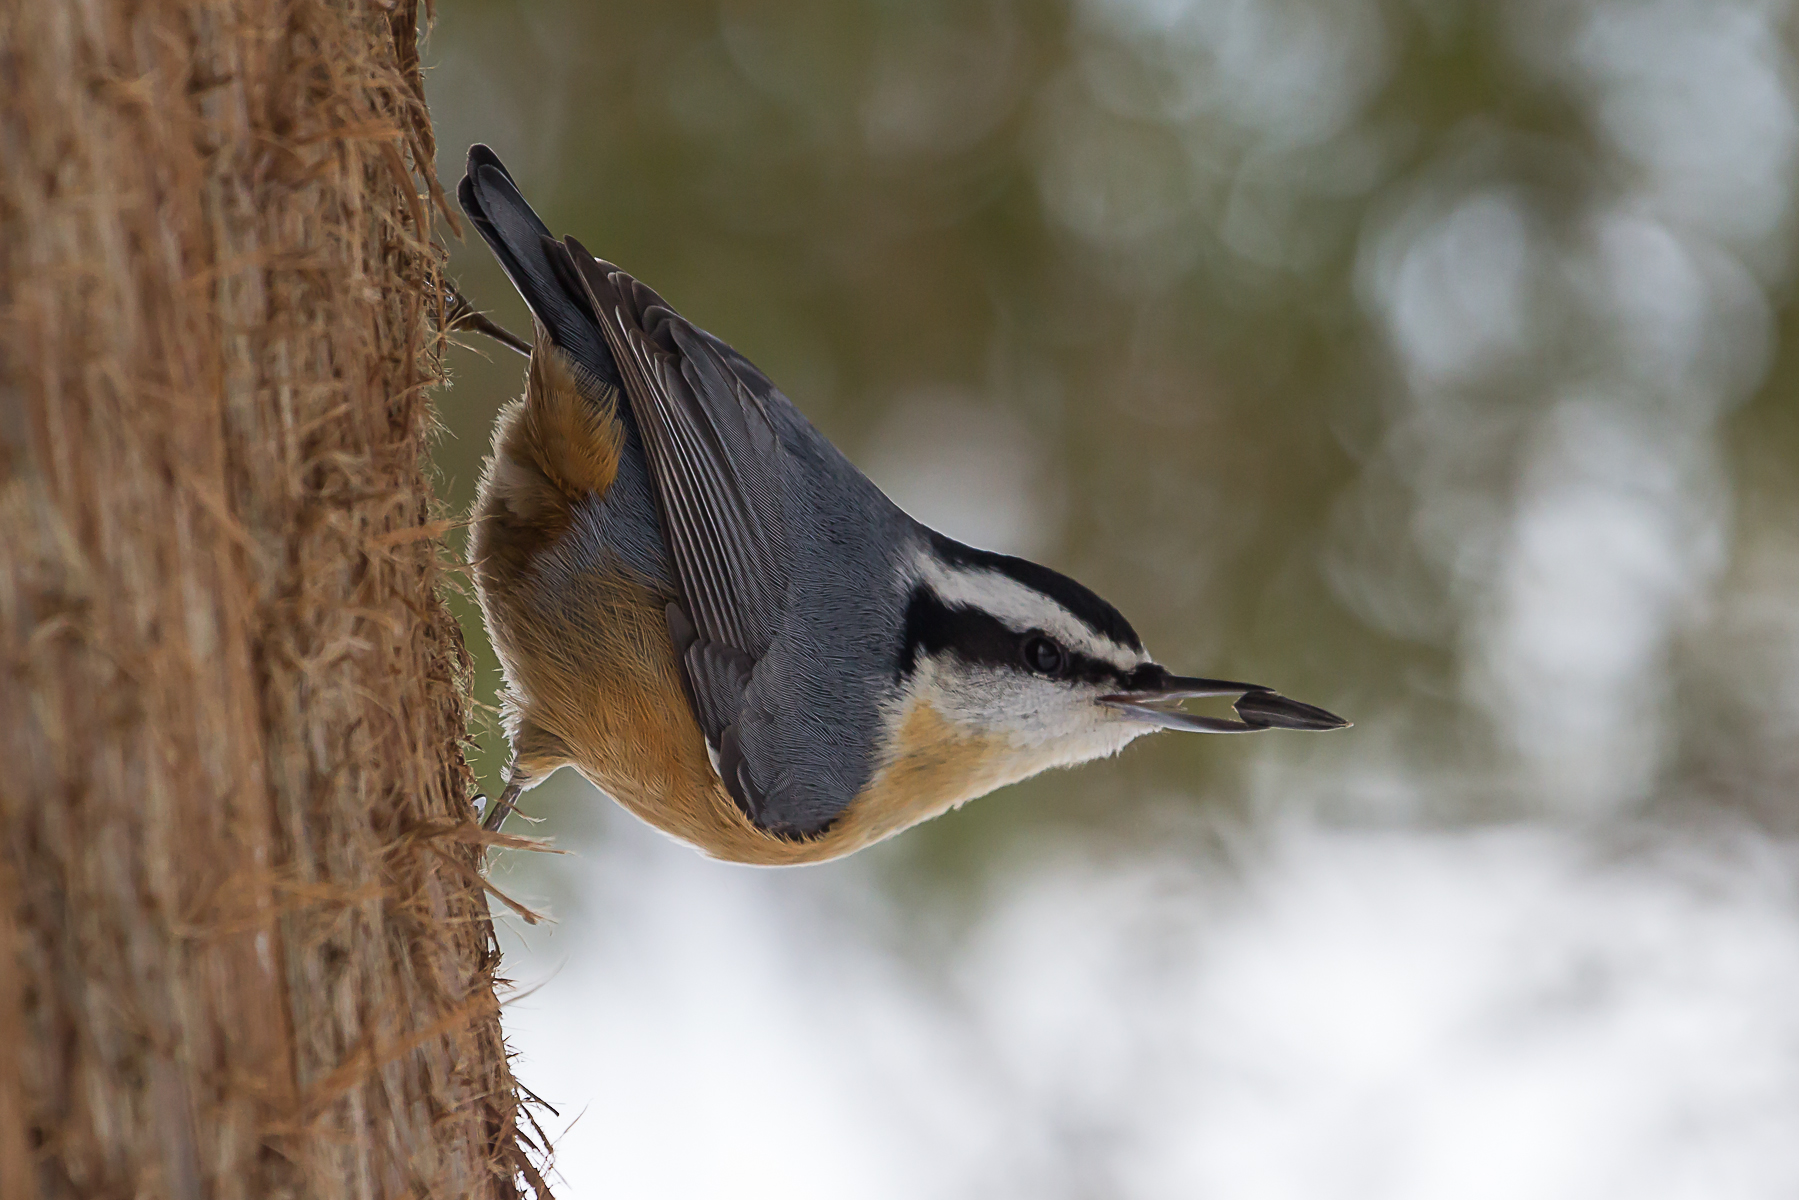 Red-breasted Nuthatch photographed by Paul Roedding